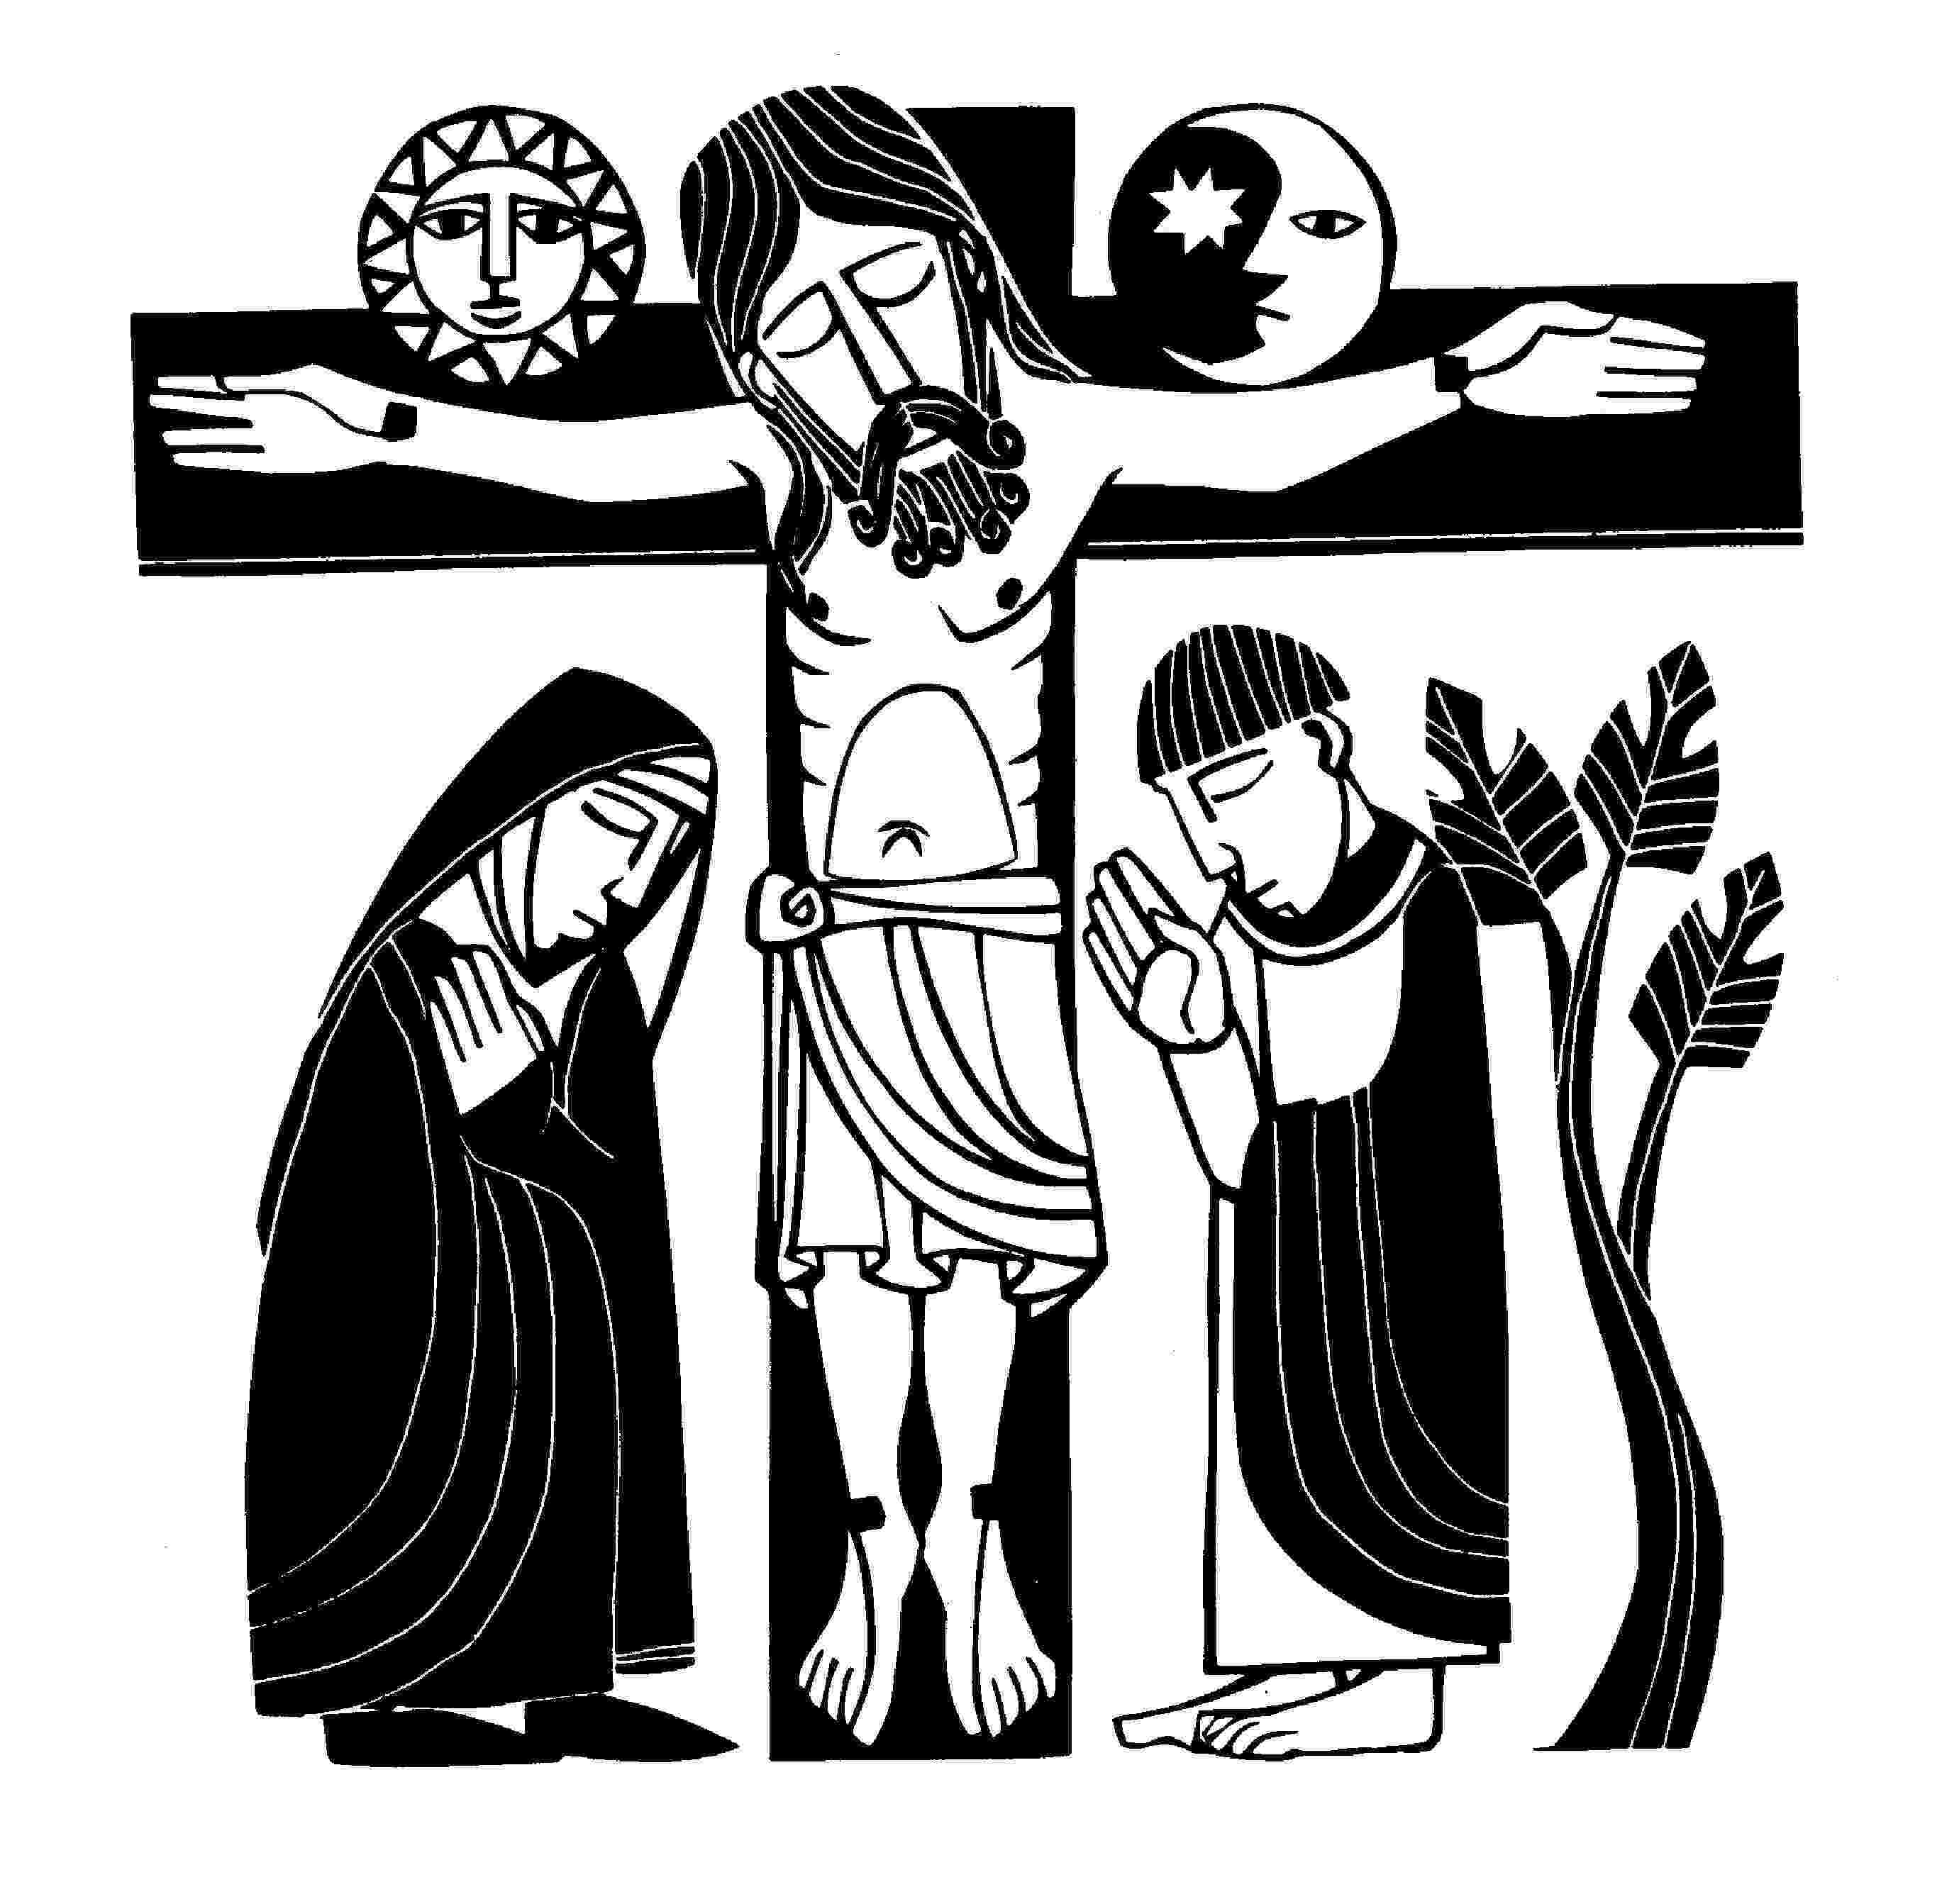 stations of the cross clip art stations of the cross clipart best clip stations cross of the art